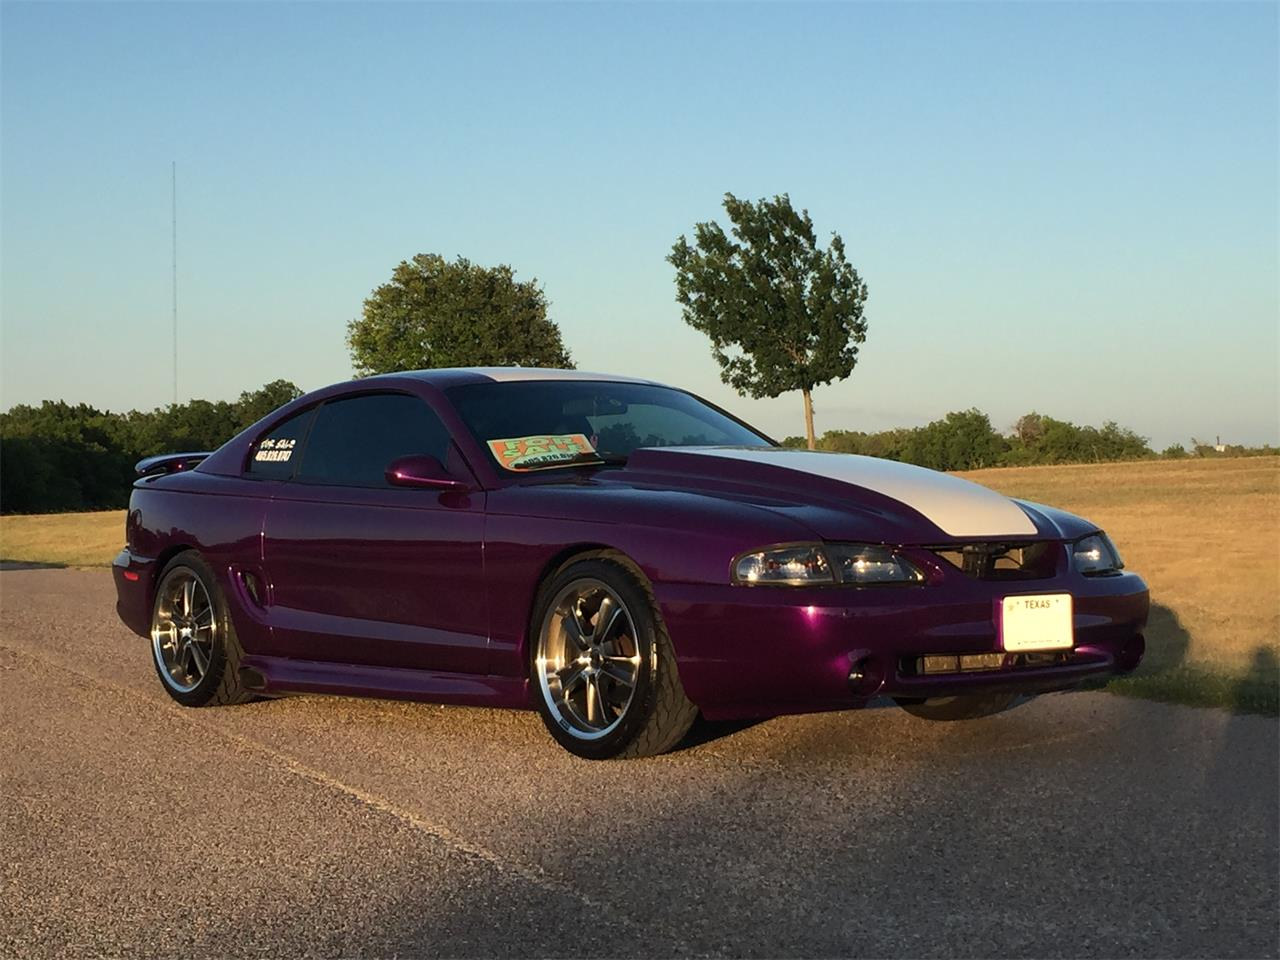 Large picture of 98 mustang gt ntzb